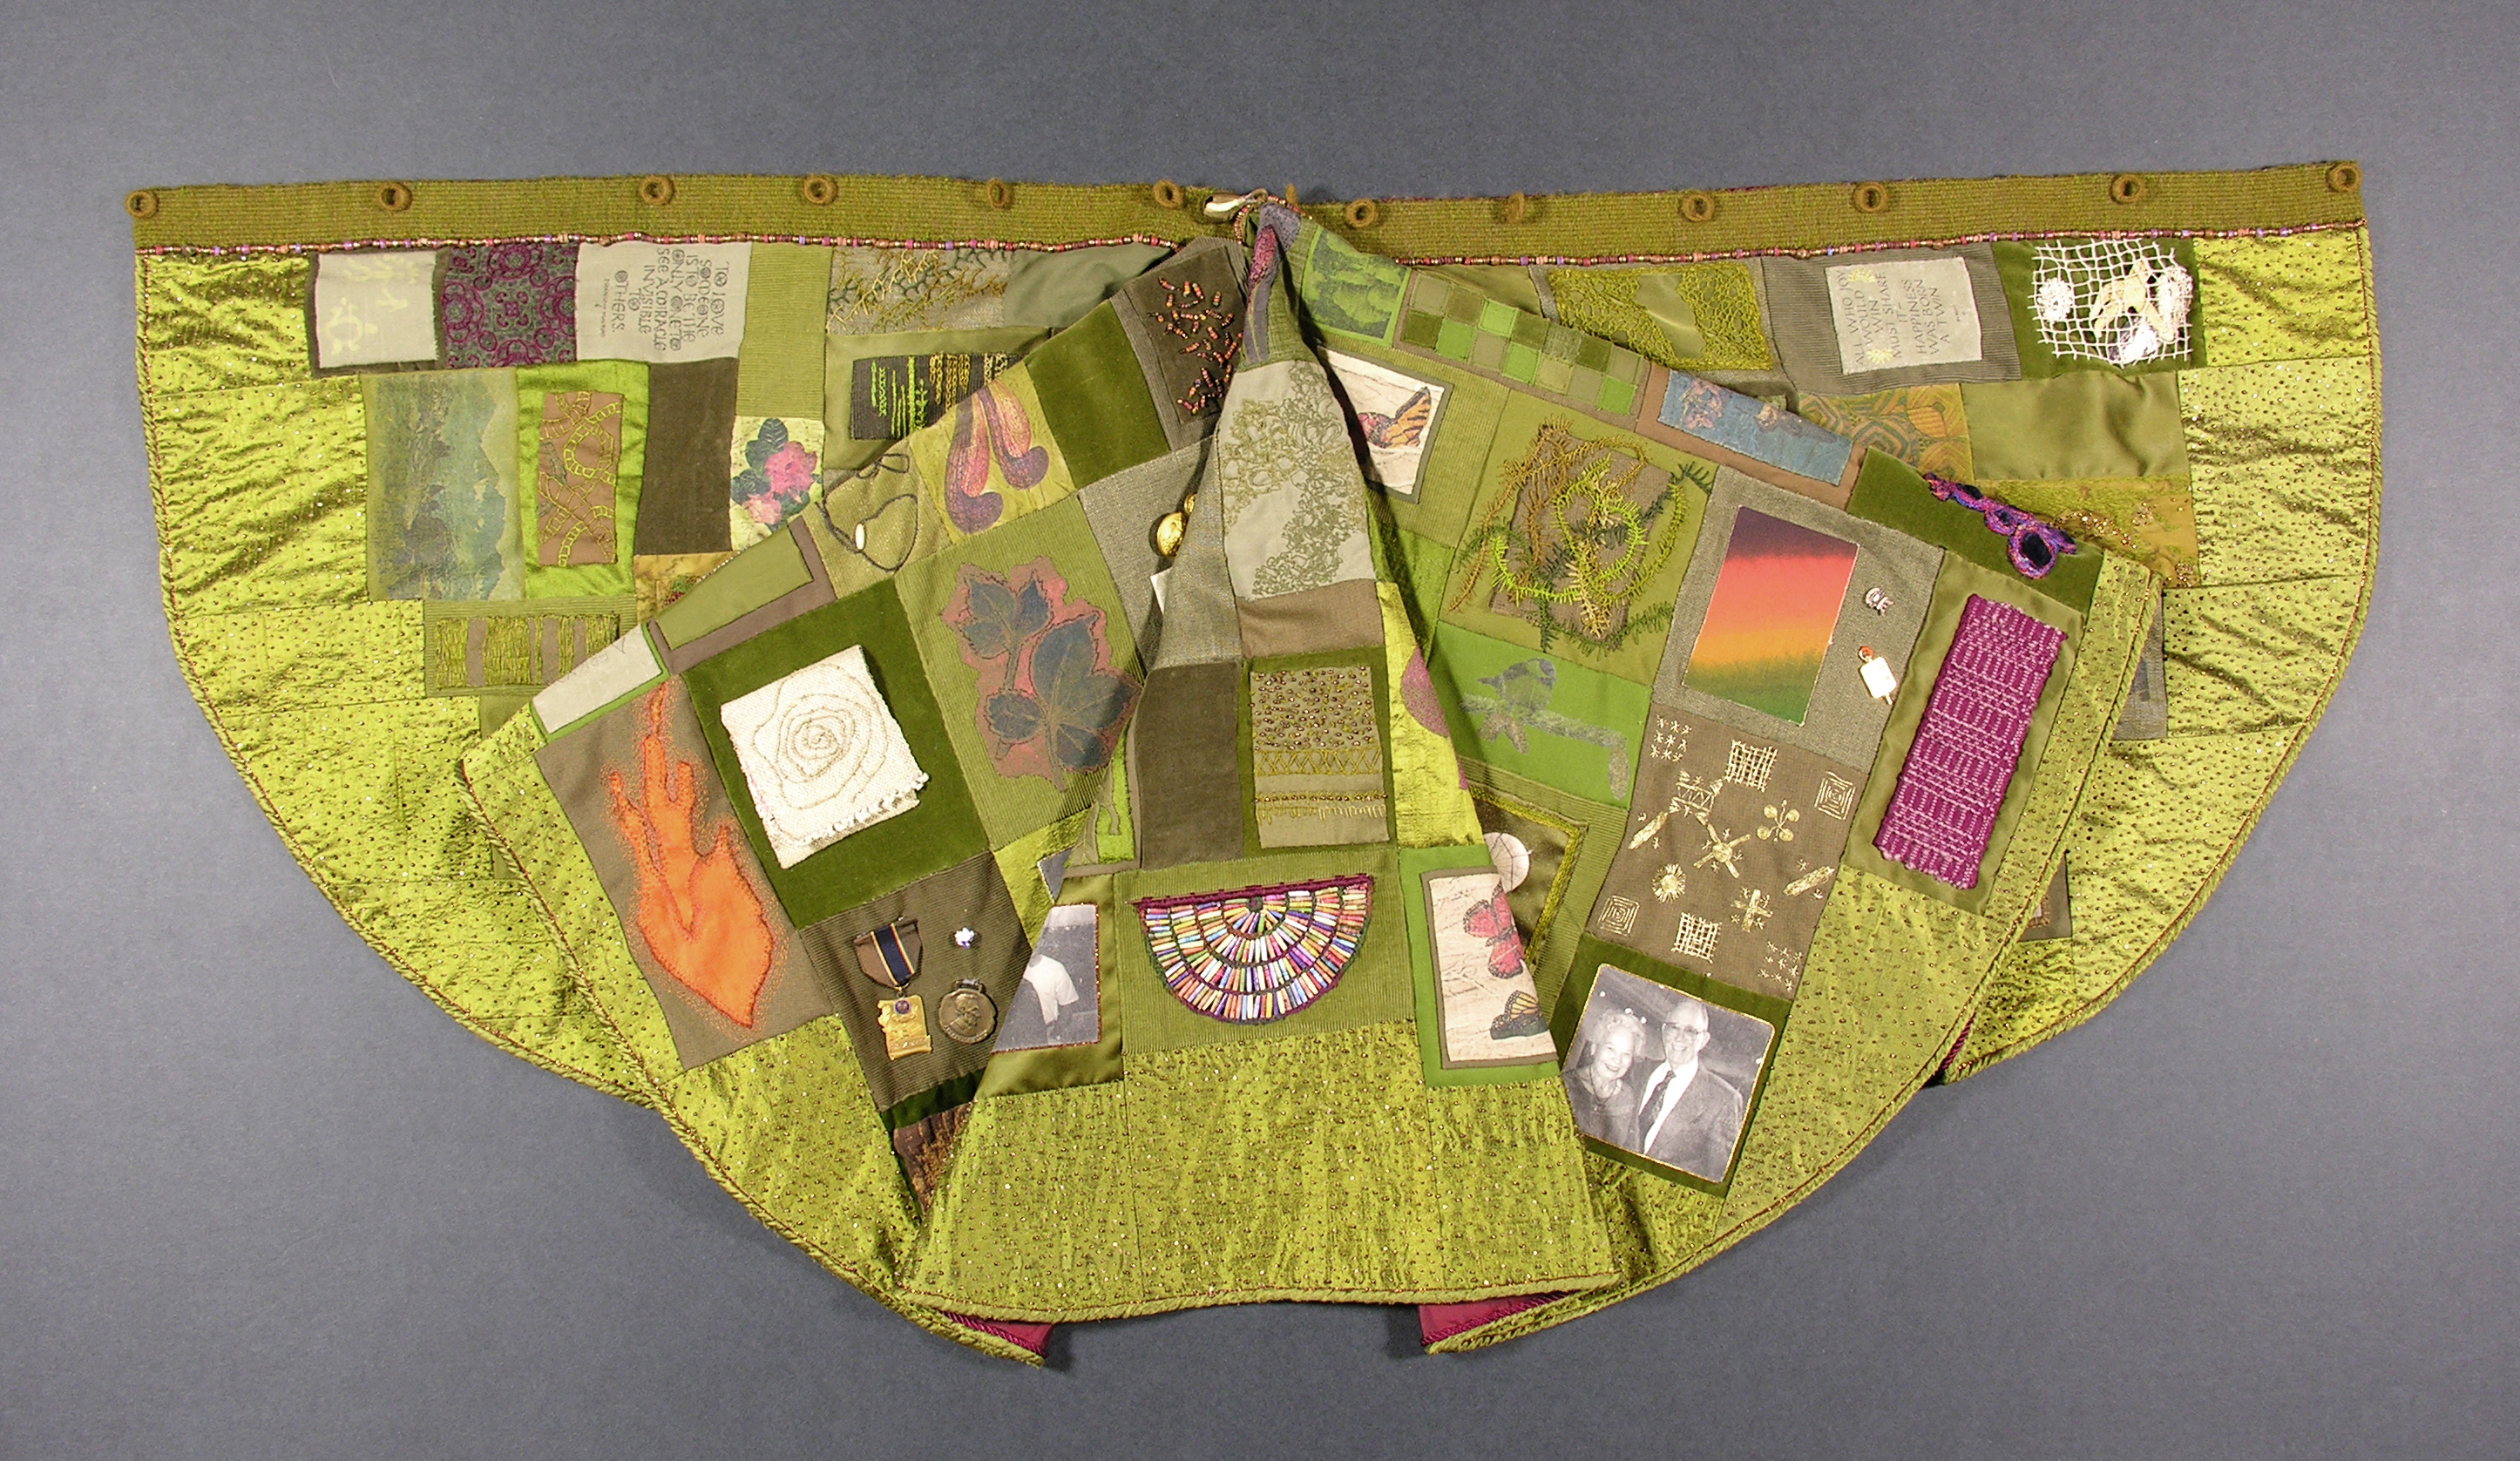 green art cape embellished with images and trinkets